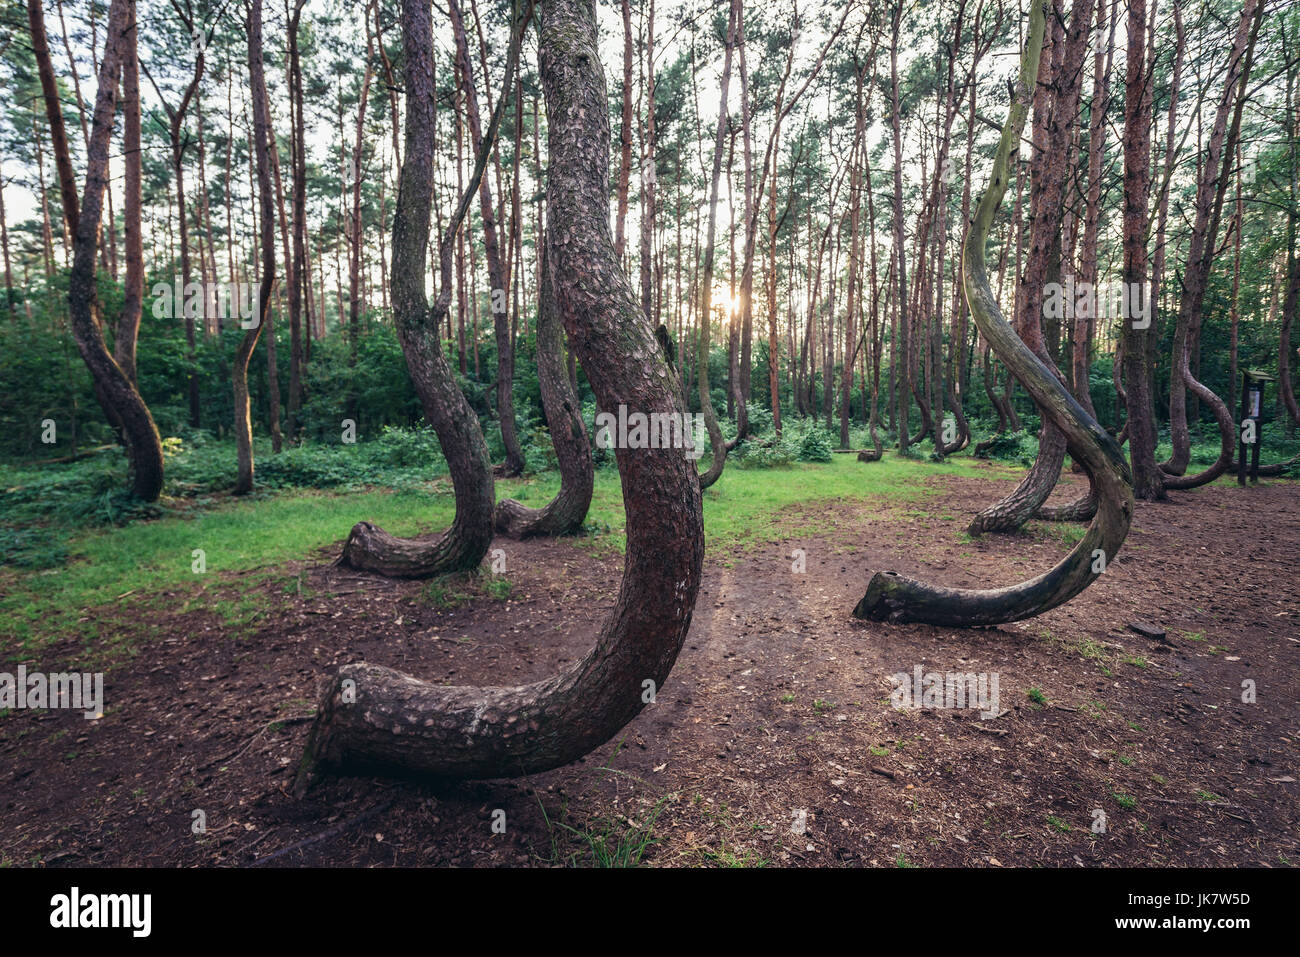 So Called Crooked Forest Polish Krzywy Las With Oddly Shaped Pine Stock Photo Alamy,Funny Animal Pictures With Captions Clean